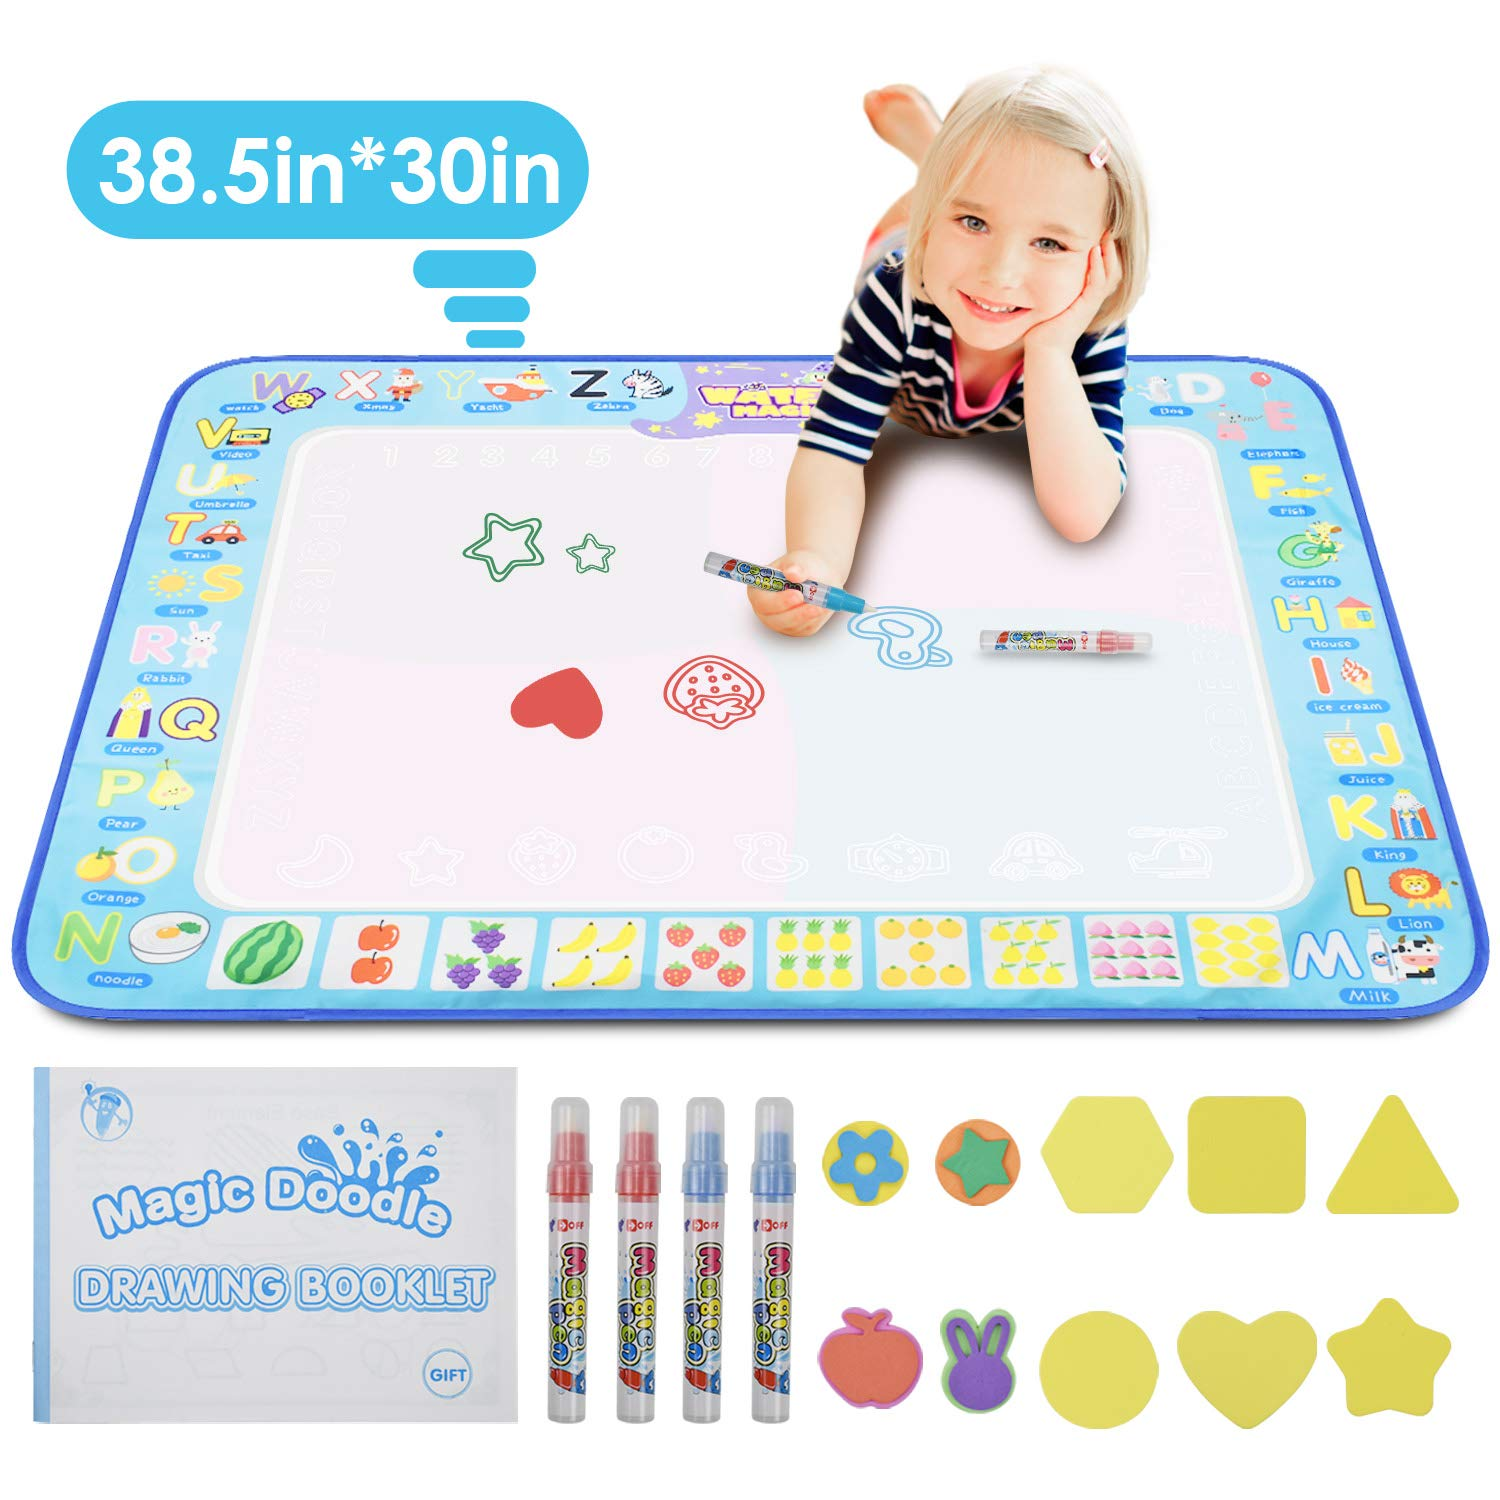 """KATUMO Water Doodle Mat, Extra Large Water Drawing Mat Kids Magic Doodle Board Painting Writing Pad Educational Toy Gift for Kids/Toddlers Learning Painting Coloring, Age 3+, 38.5"""" 30"""" in 4 Colors"""